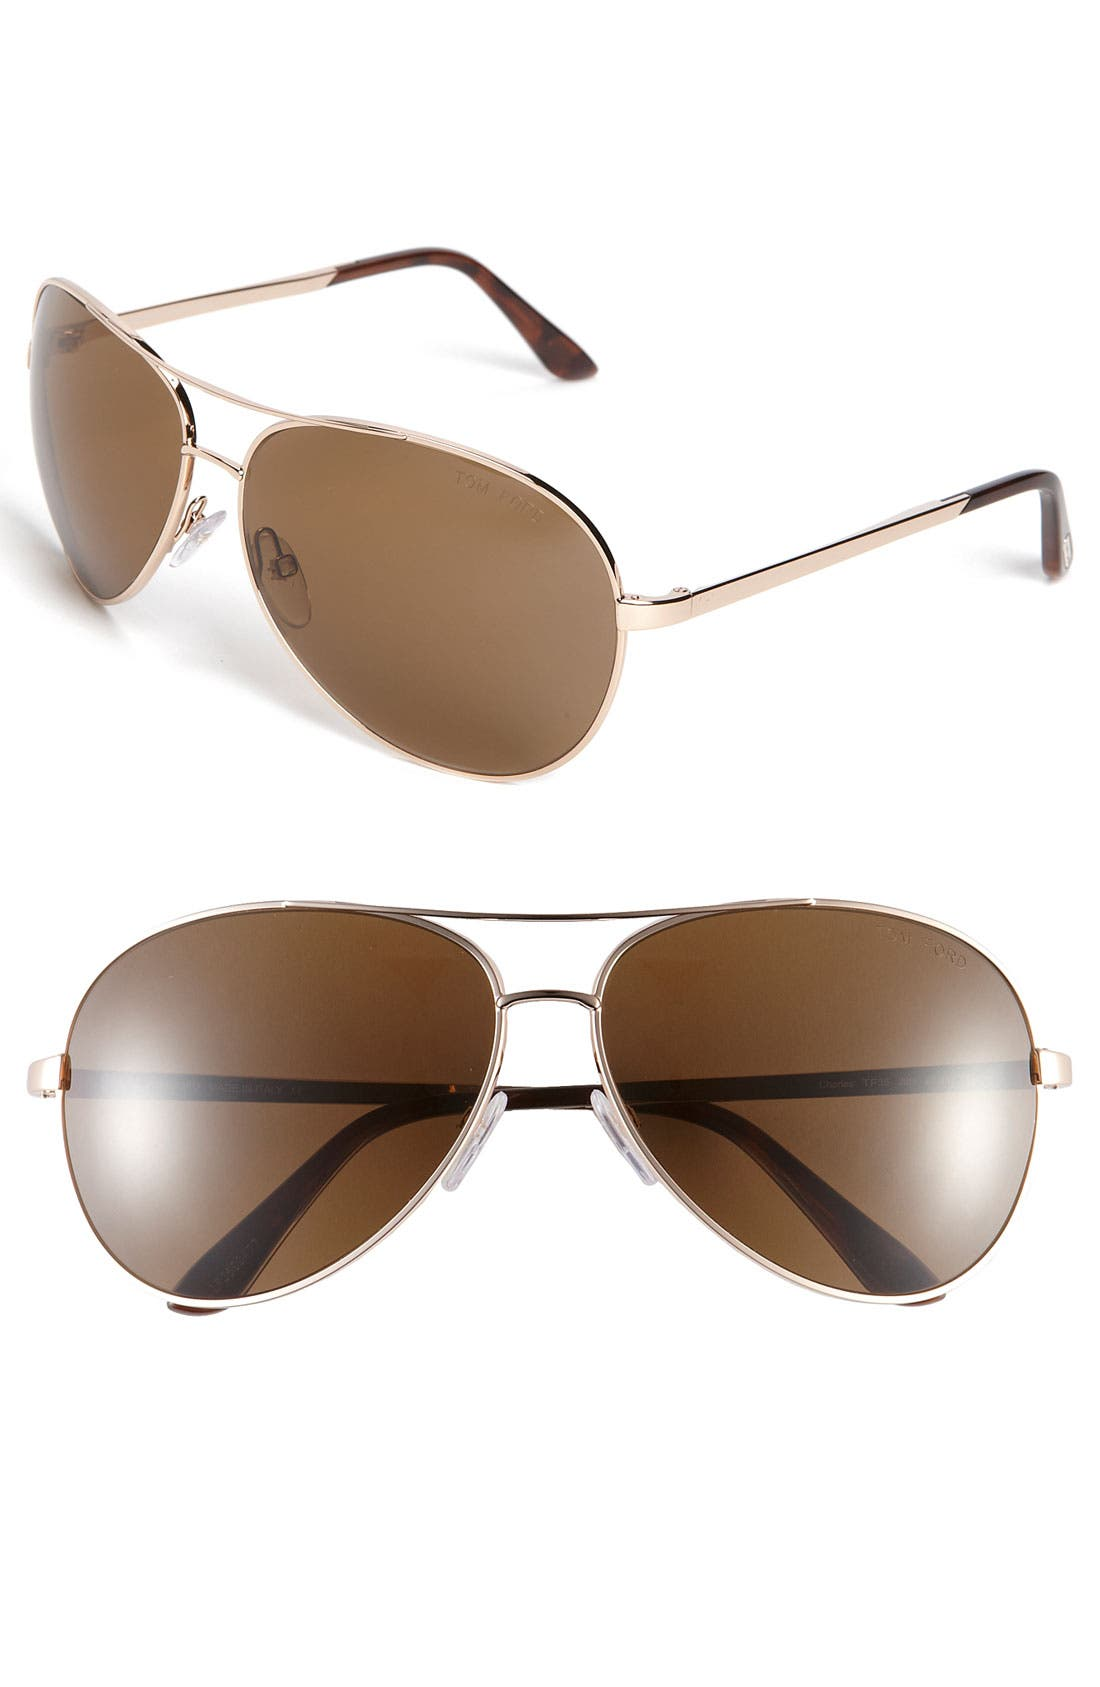 Alternate Image 1 Selected - Tom Ford 'Charles' 62mm Polarized Sunglasses